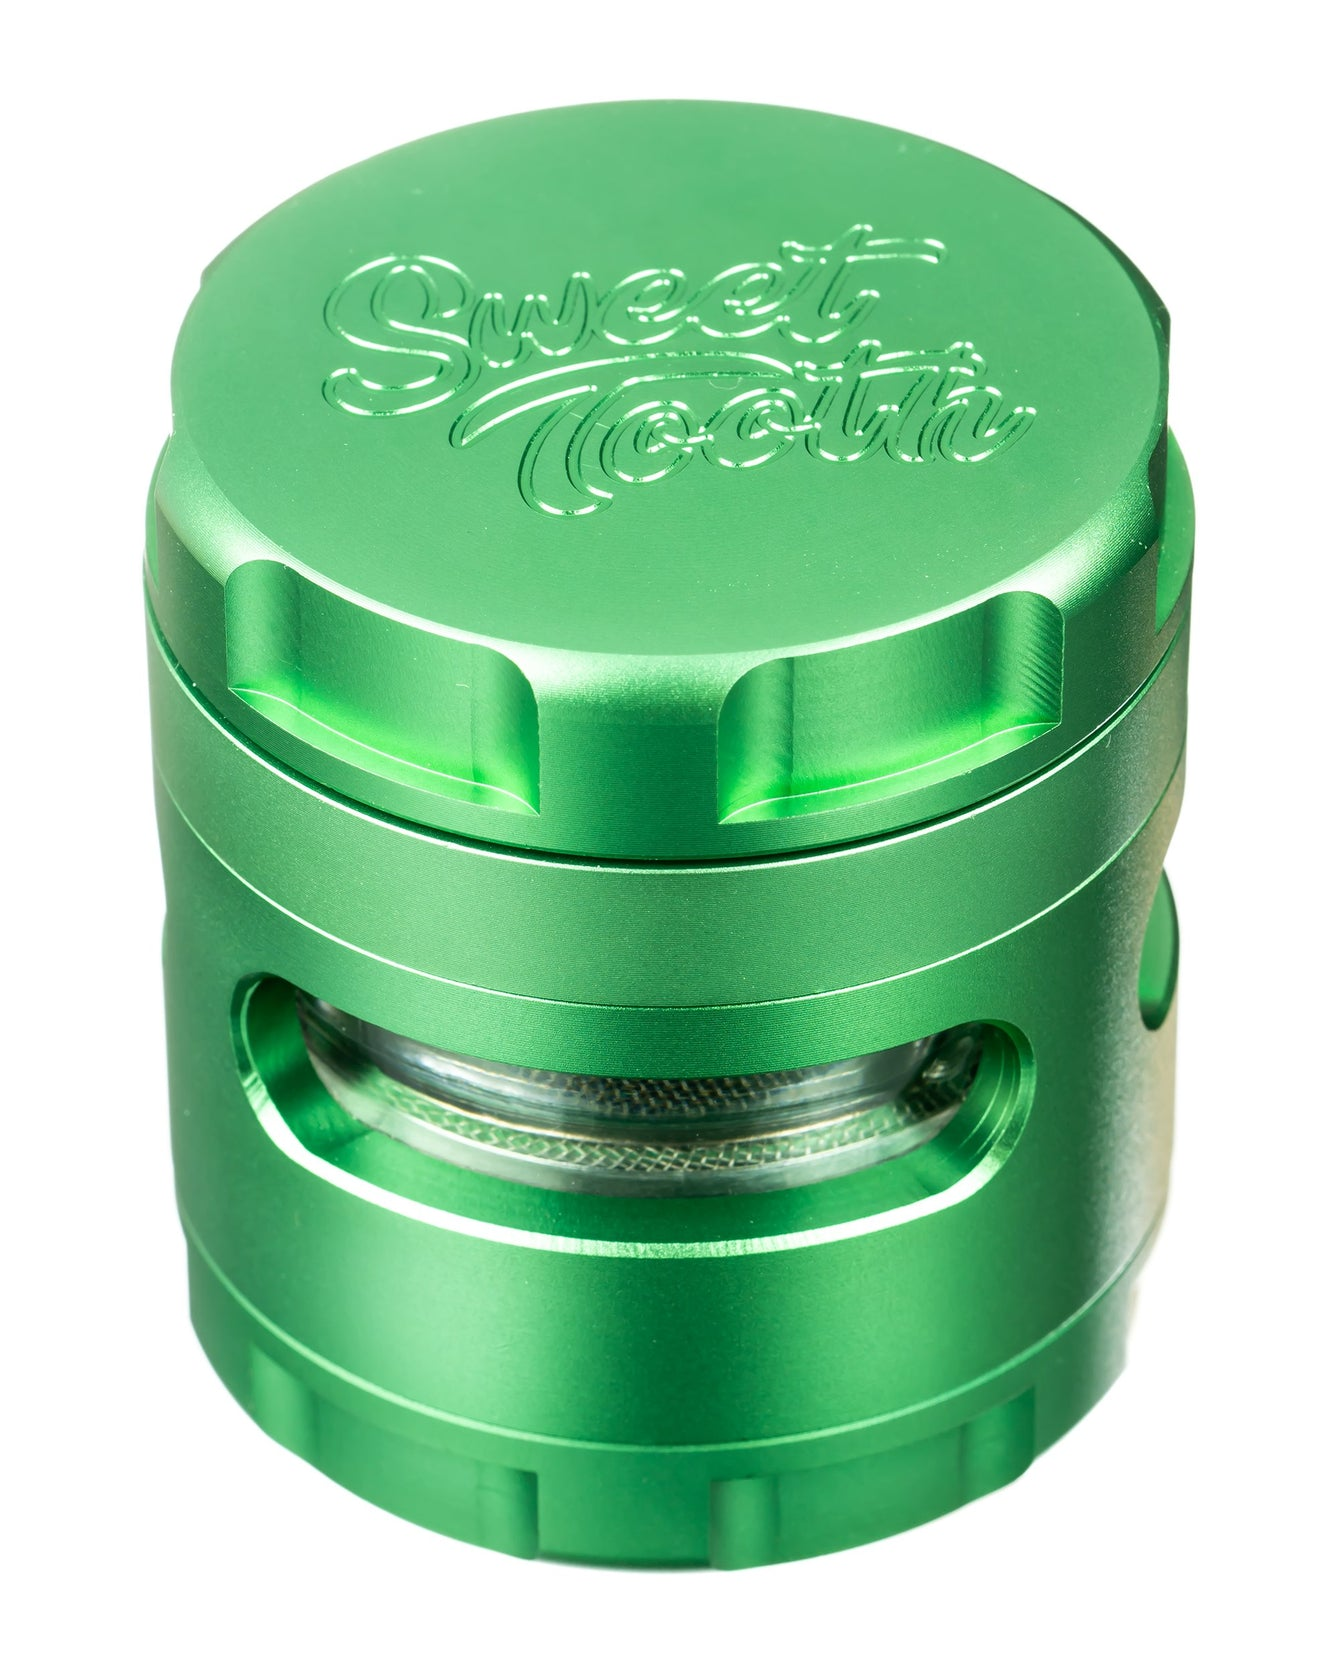 Green 4-Piece Large Radial Teeth Aluminum Grinder